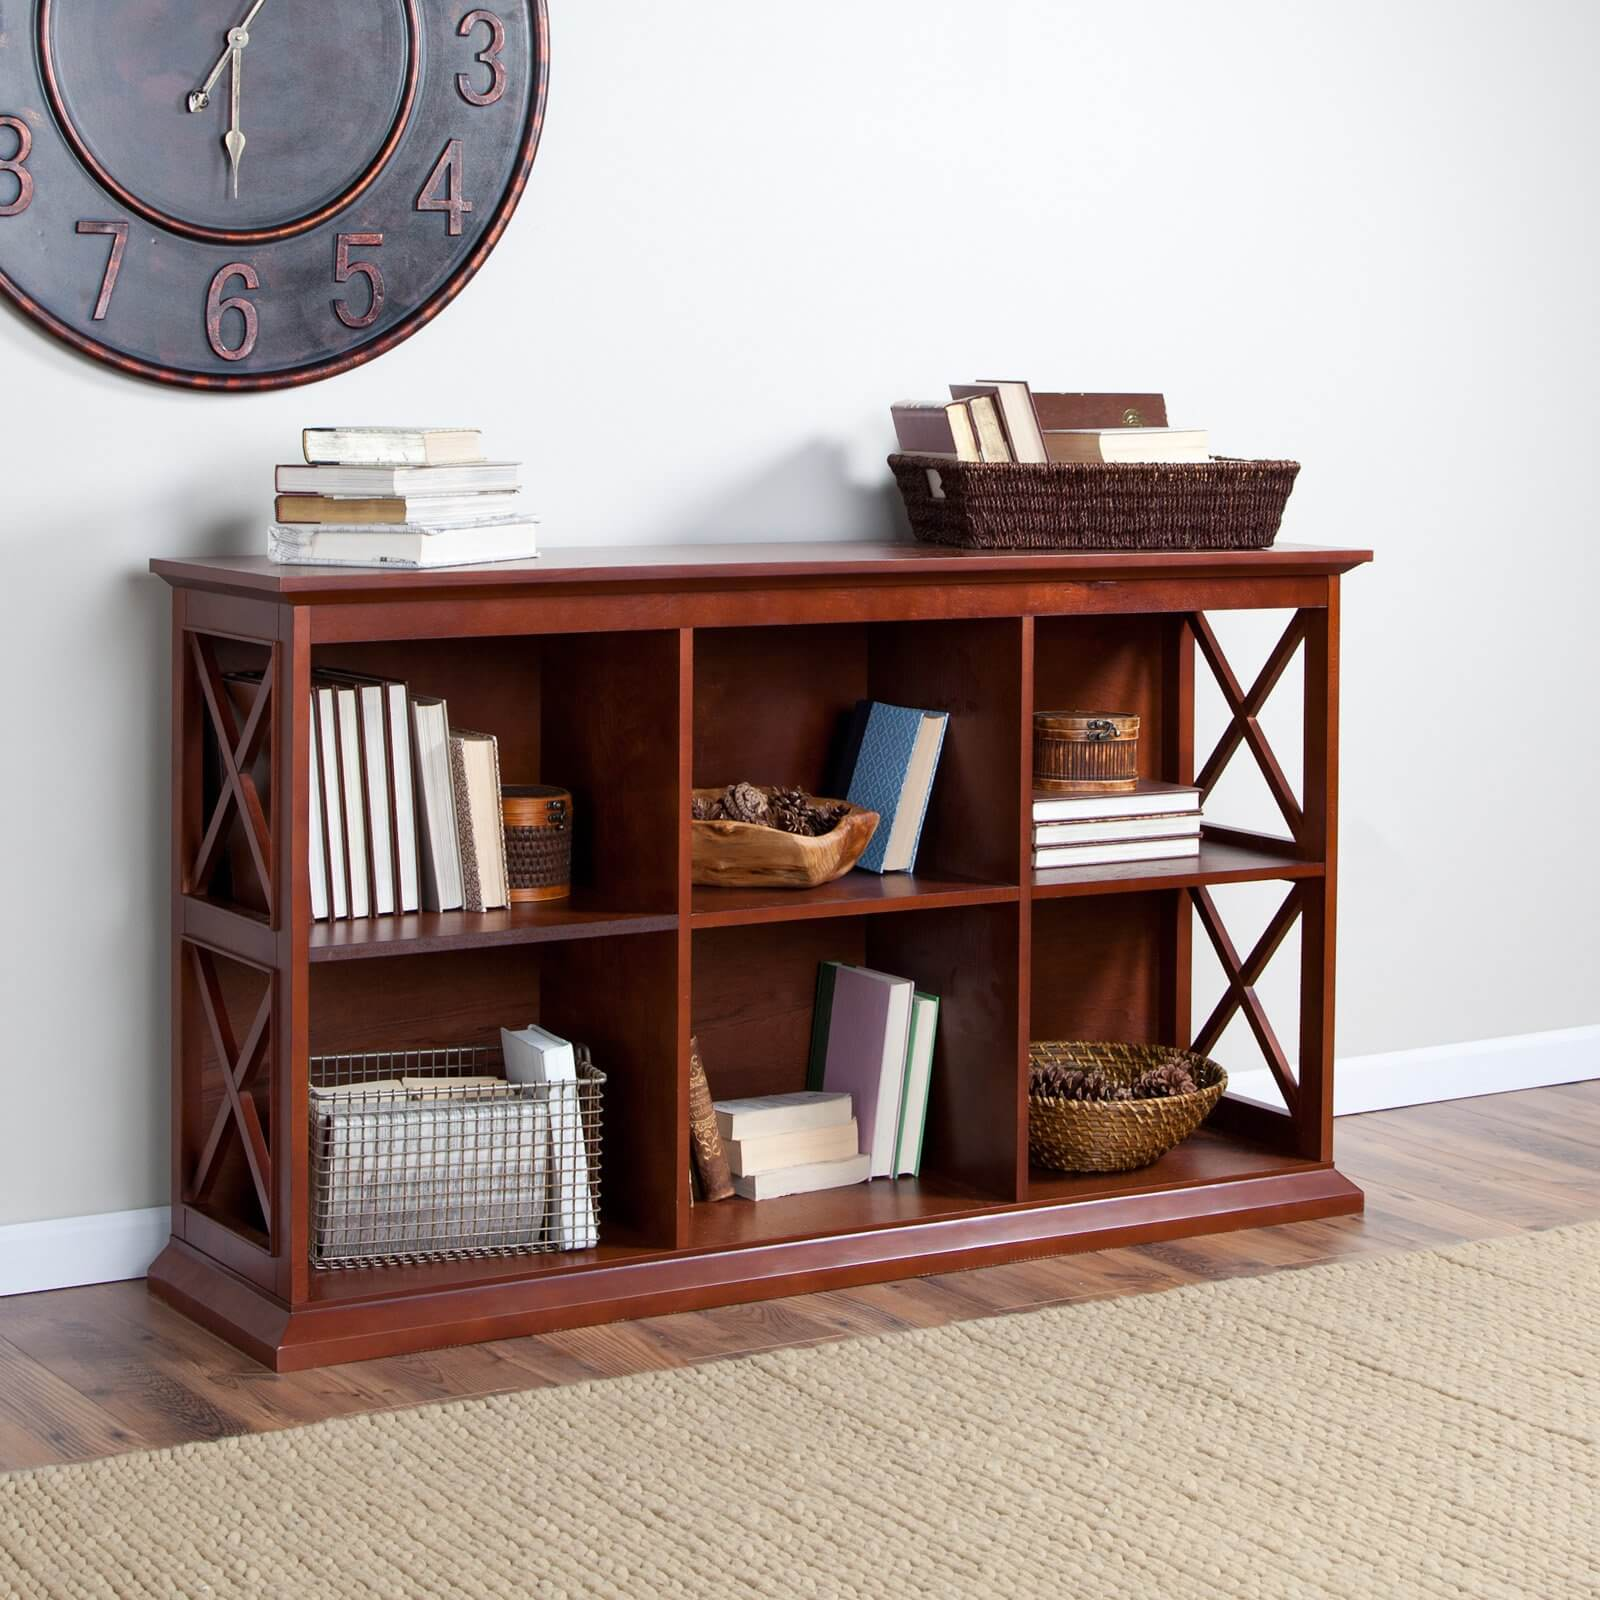 Traditional style evoked a timeless sense through classically proportioned construction, artful detail, and a solid appearance. Most often constructed of wood, traditional bookcases may boast filigreed accents and carved wood detail.